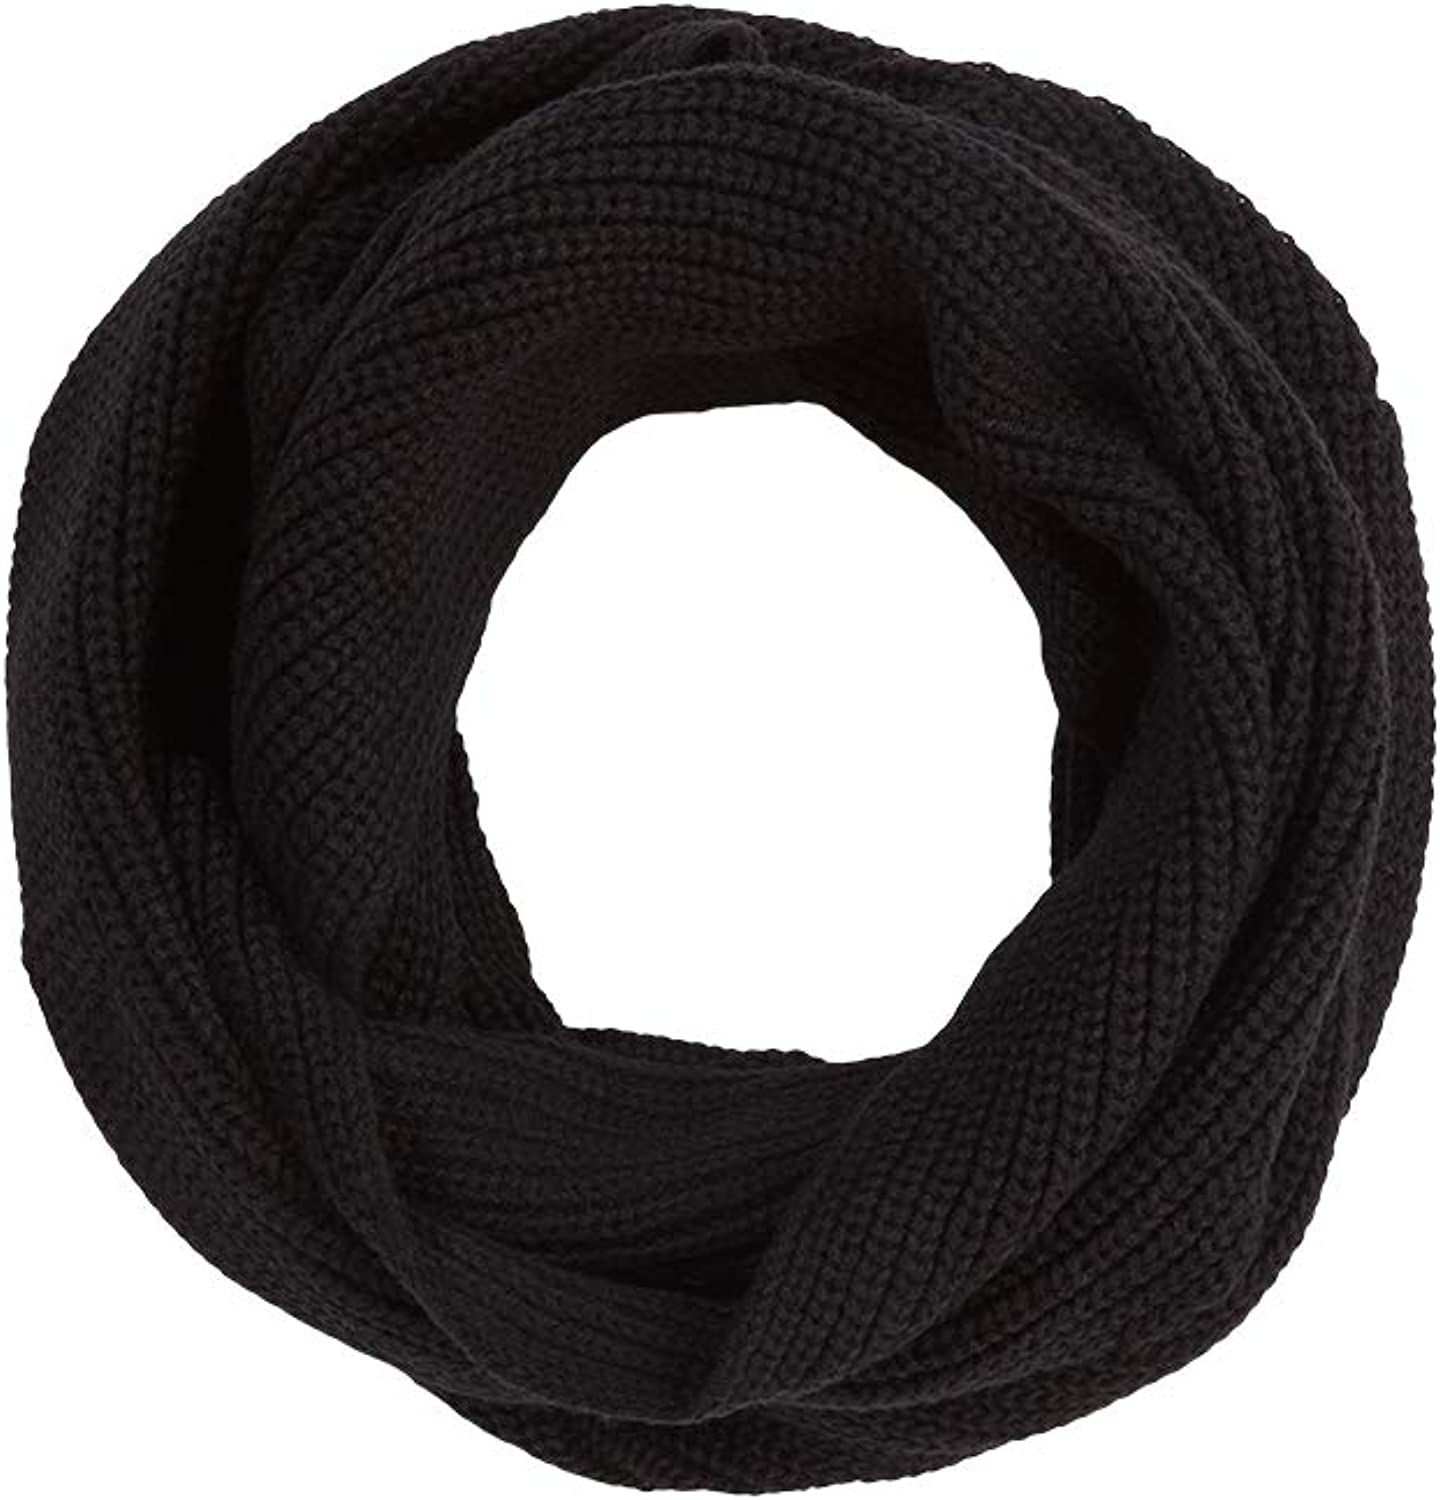 s.Oliver Boys Cold Weather Scarf